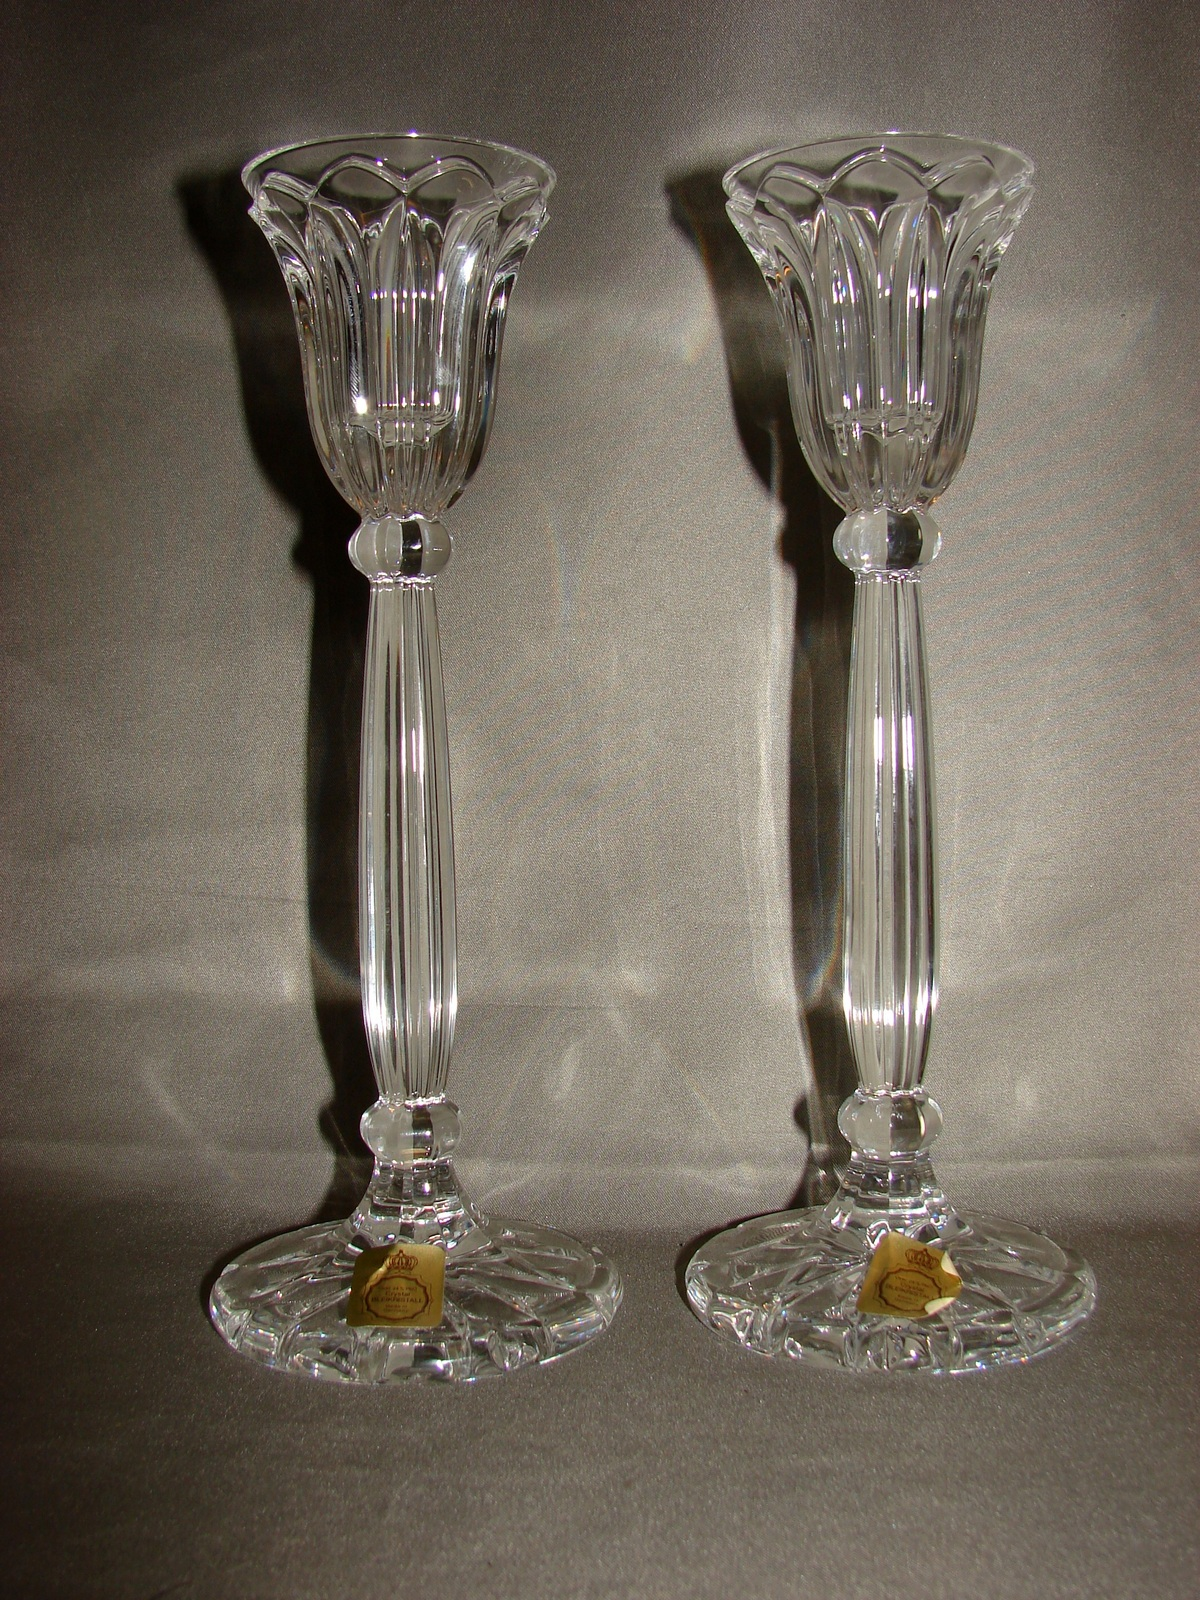 Primary image for Pair of Bleikristall Lead Crystal Tall Taper Candle Holders ~ Germany